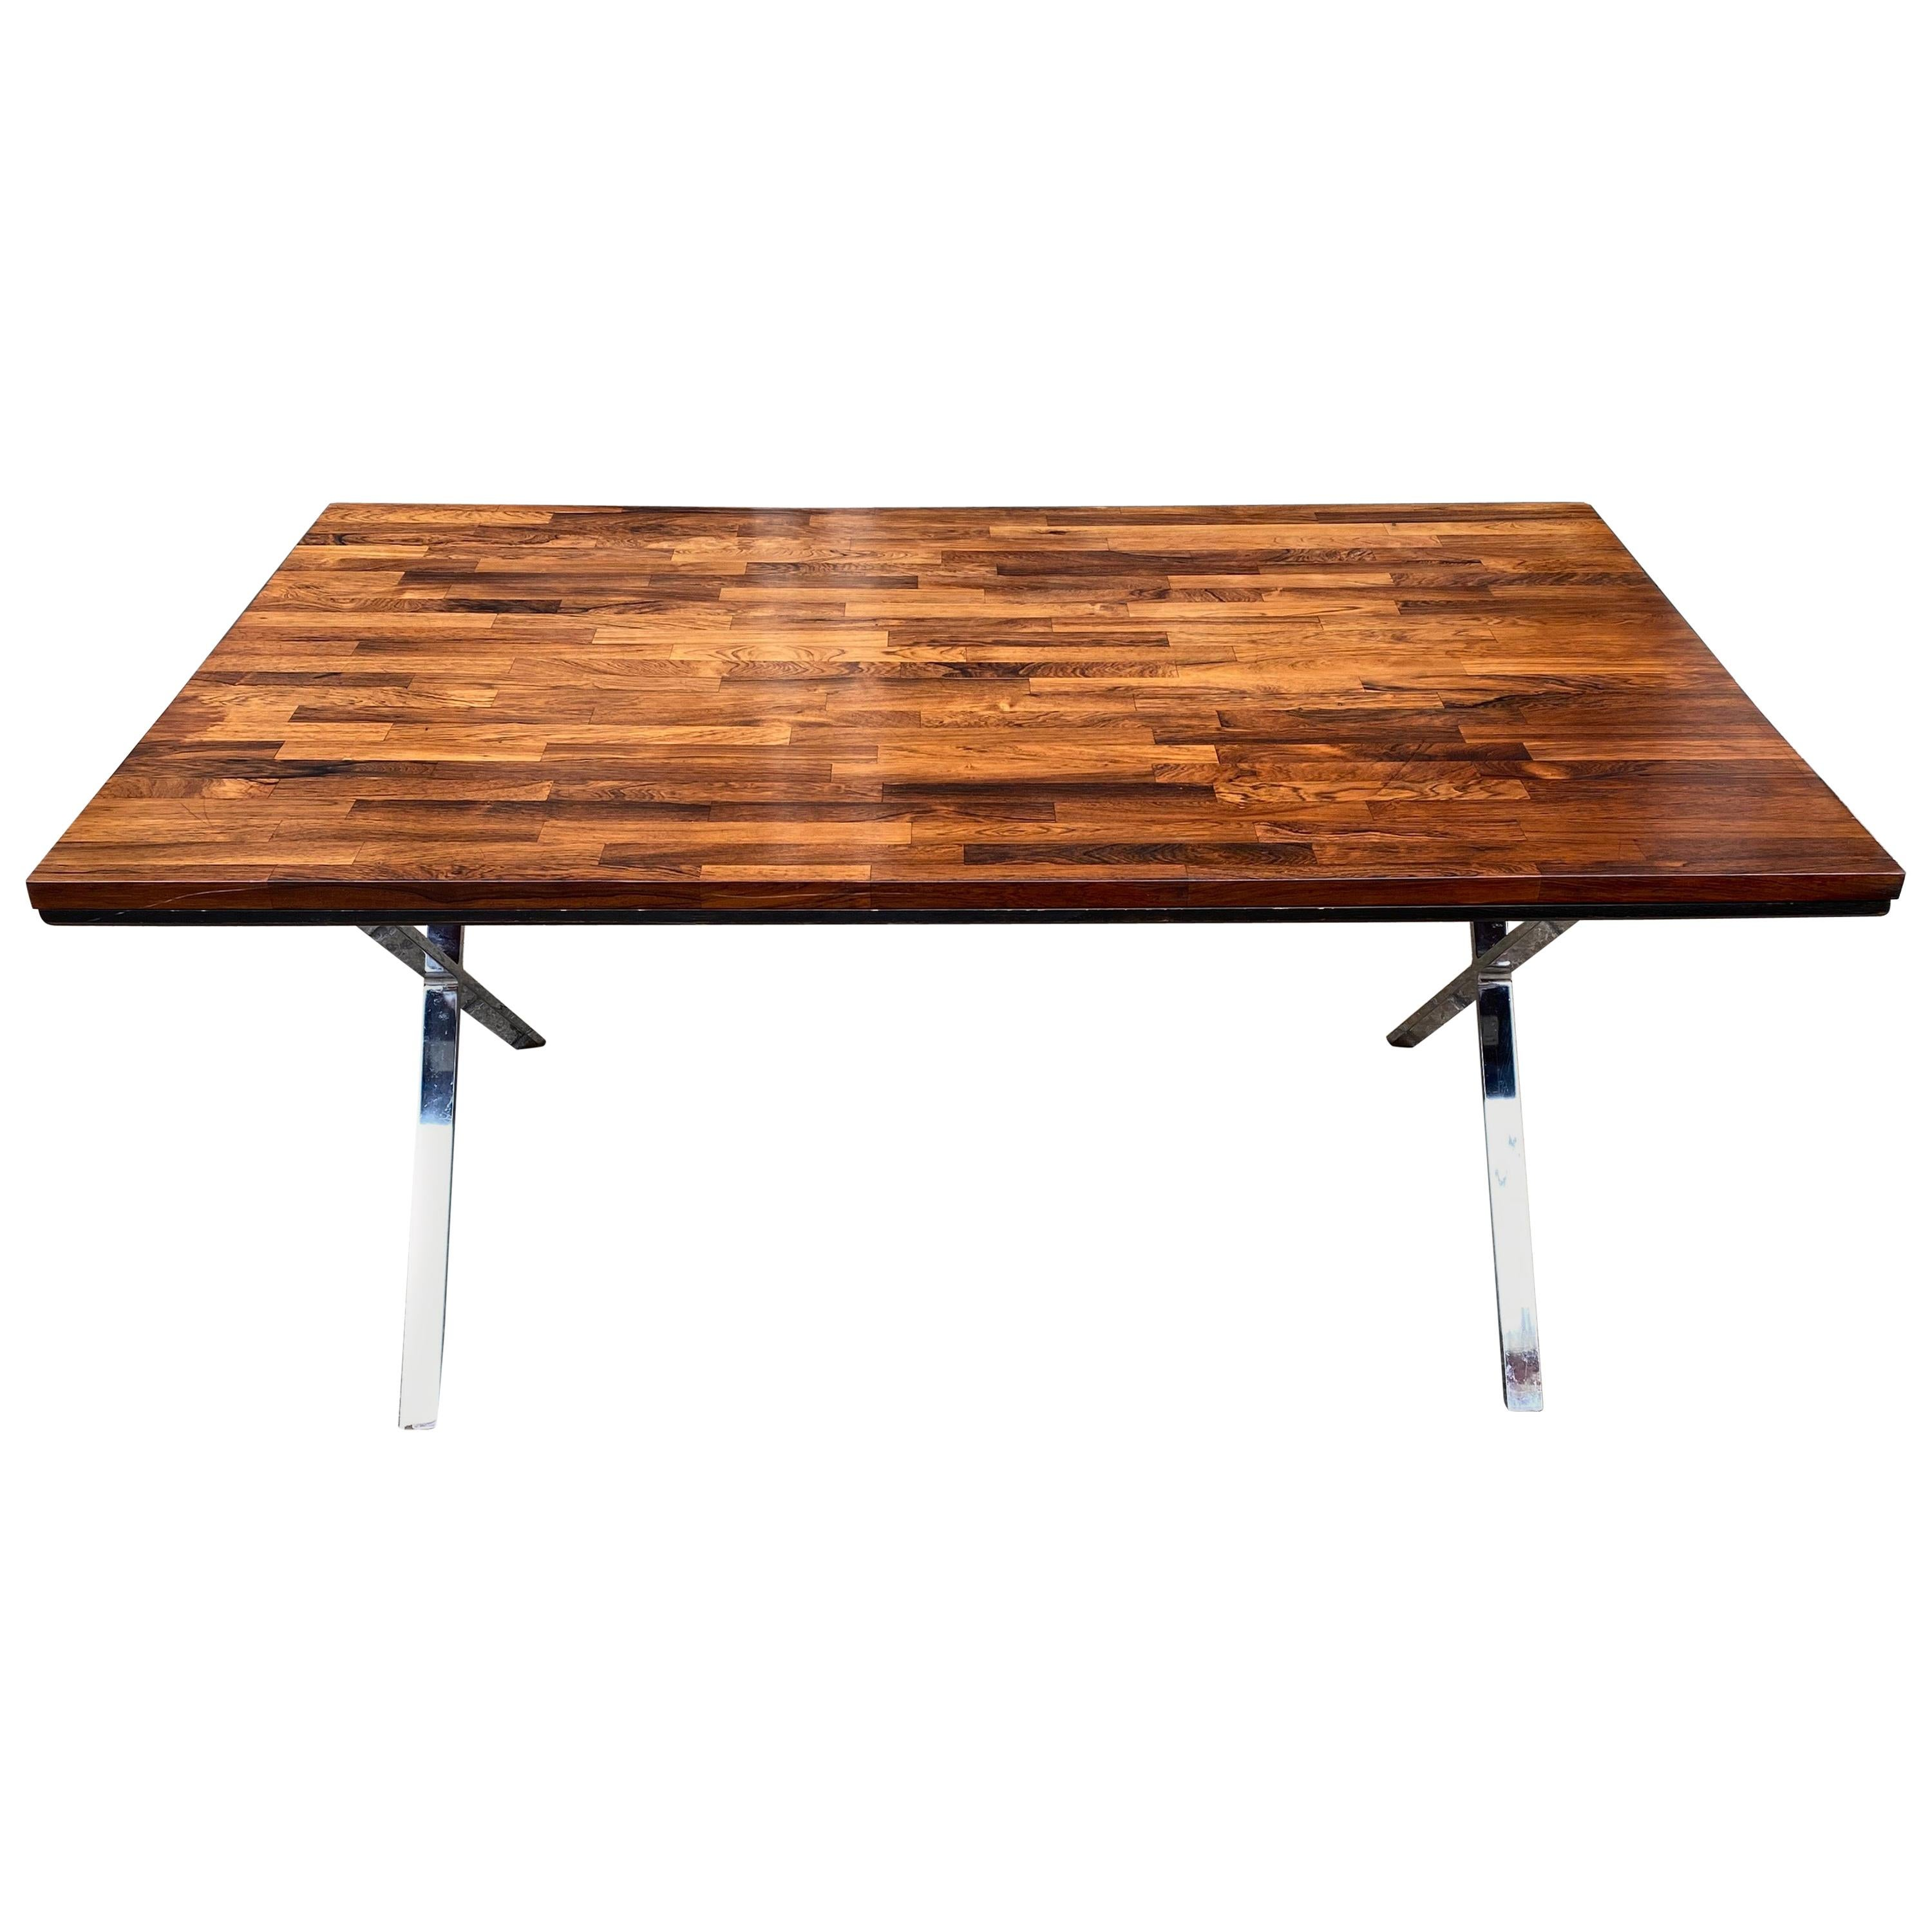 Founders Solid Rosewood Dining Table/Desk or Conference Table